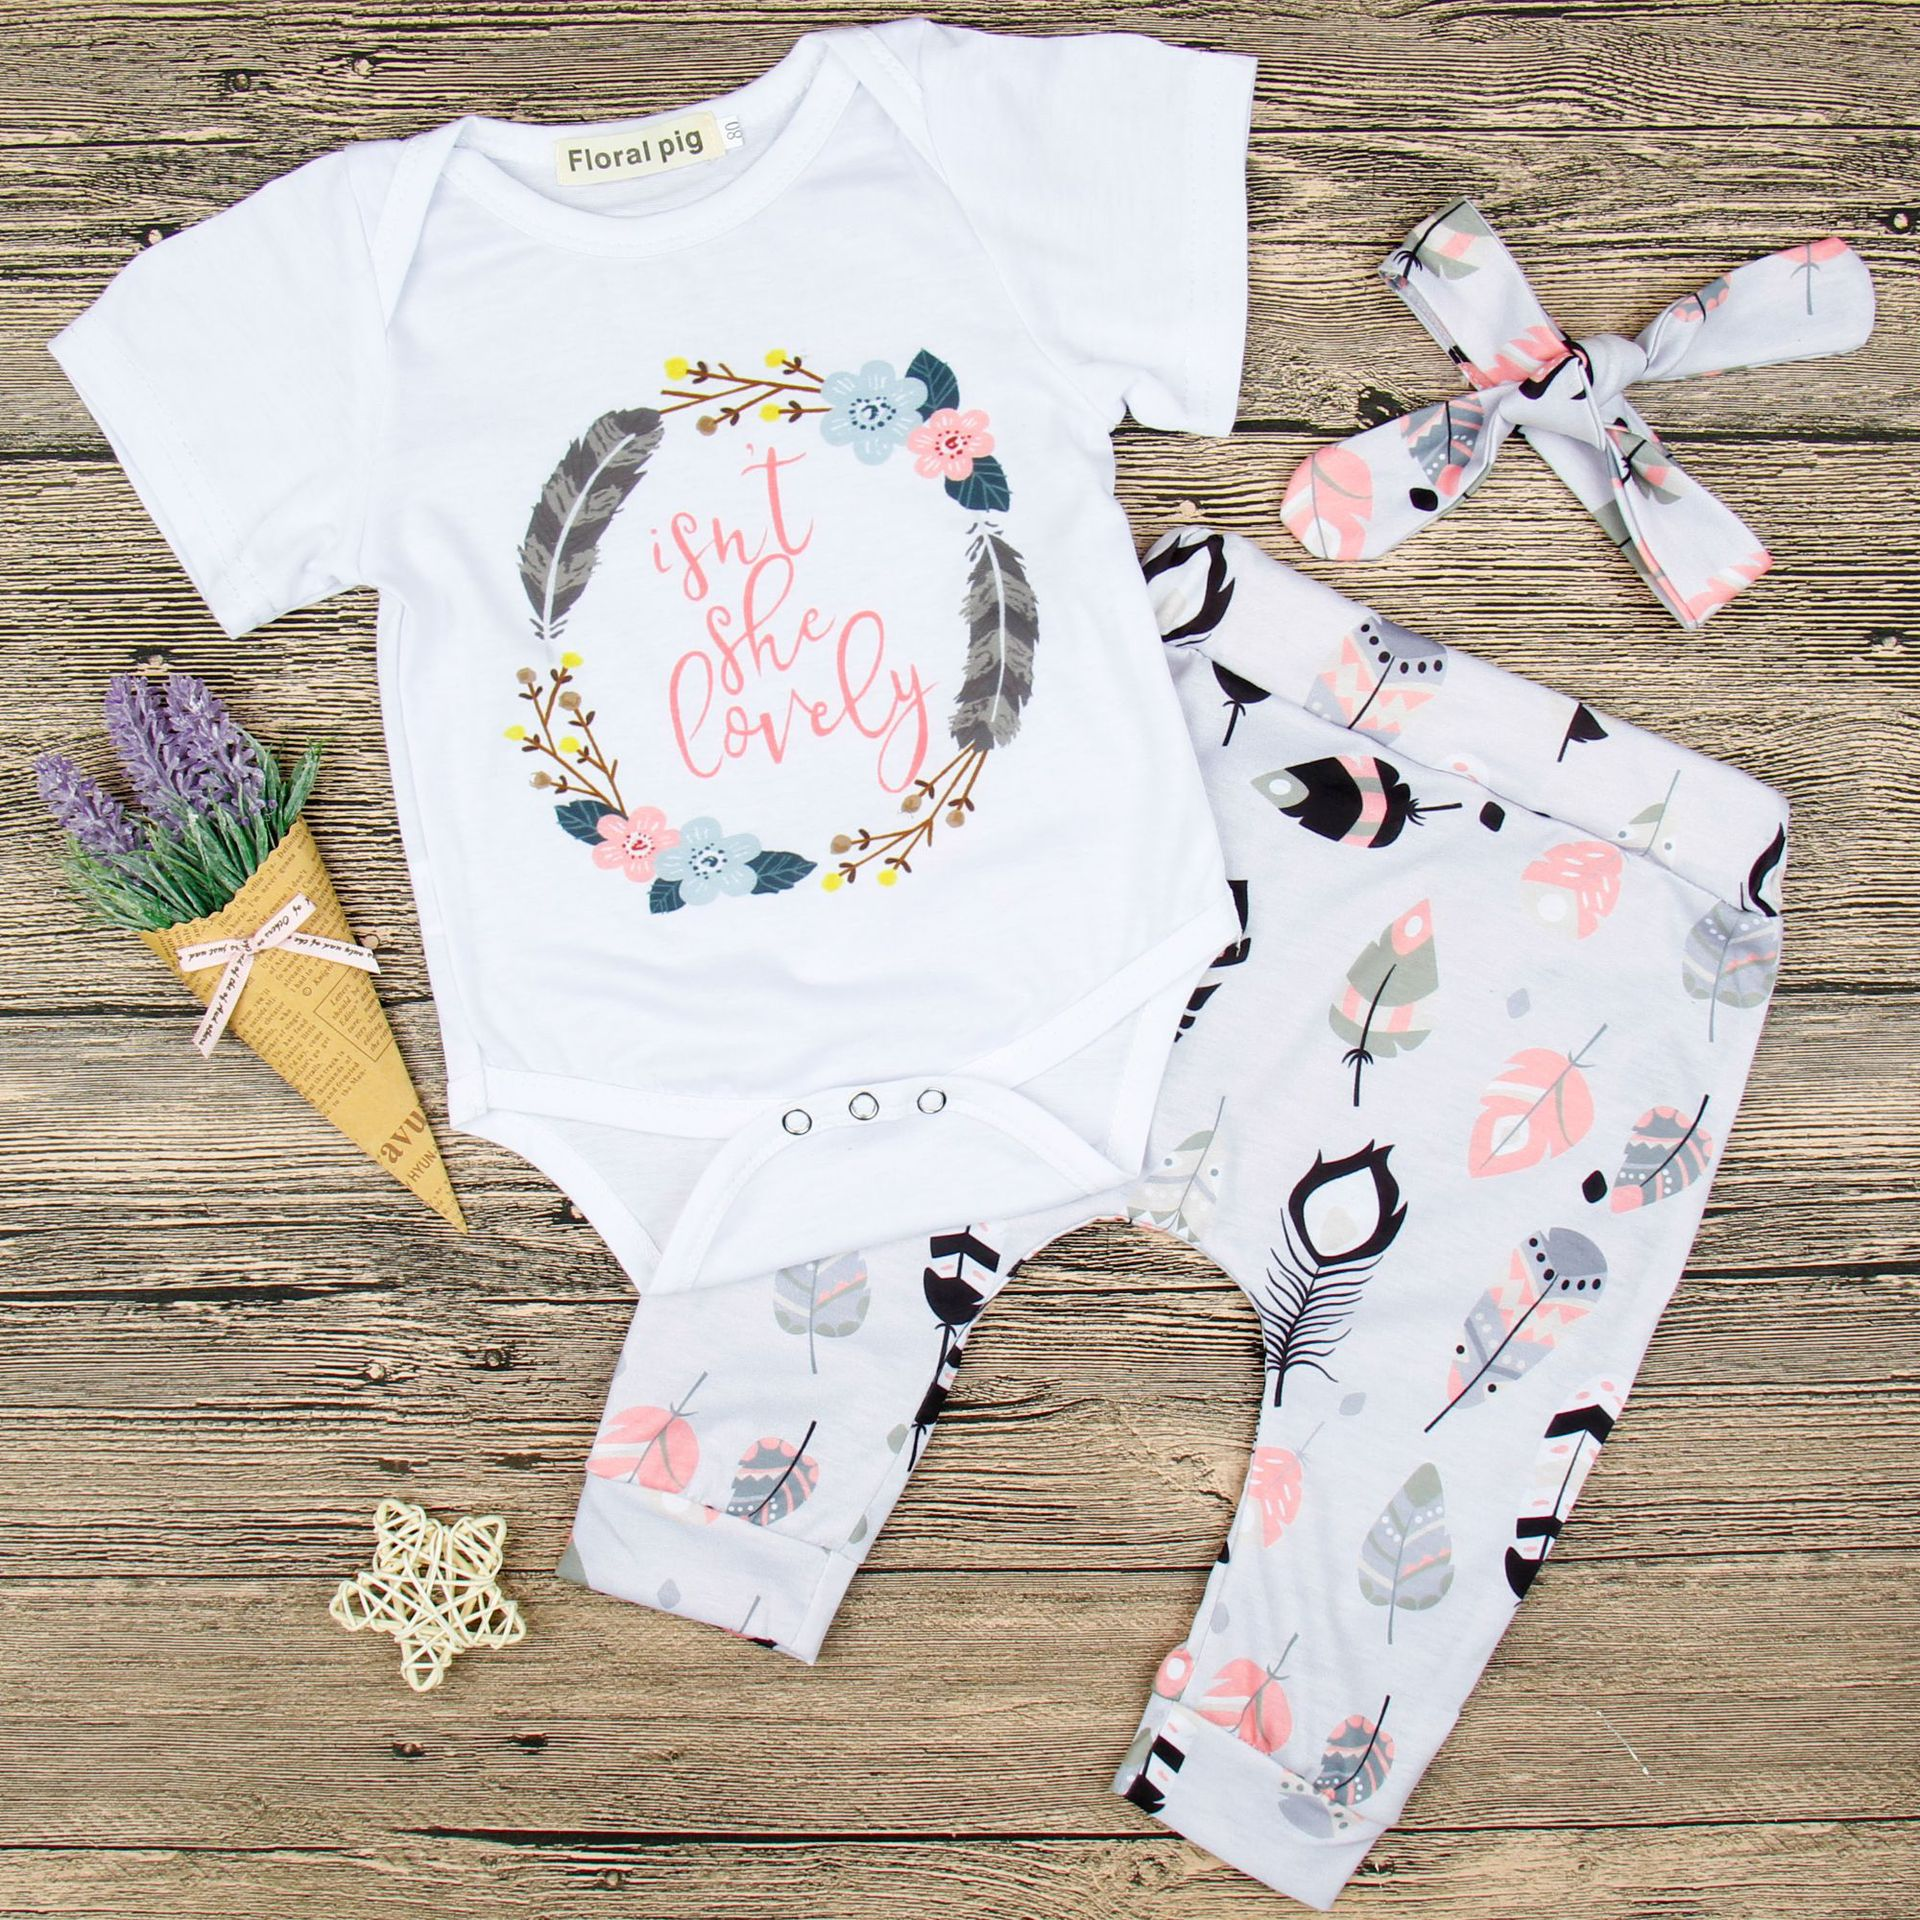 Baby Girl Print Slogans Short Sleeves Bodysuit and Leafs Pants Two Pieces Outfits with Hairband